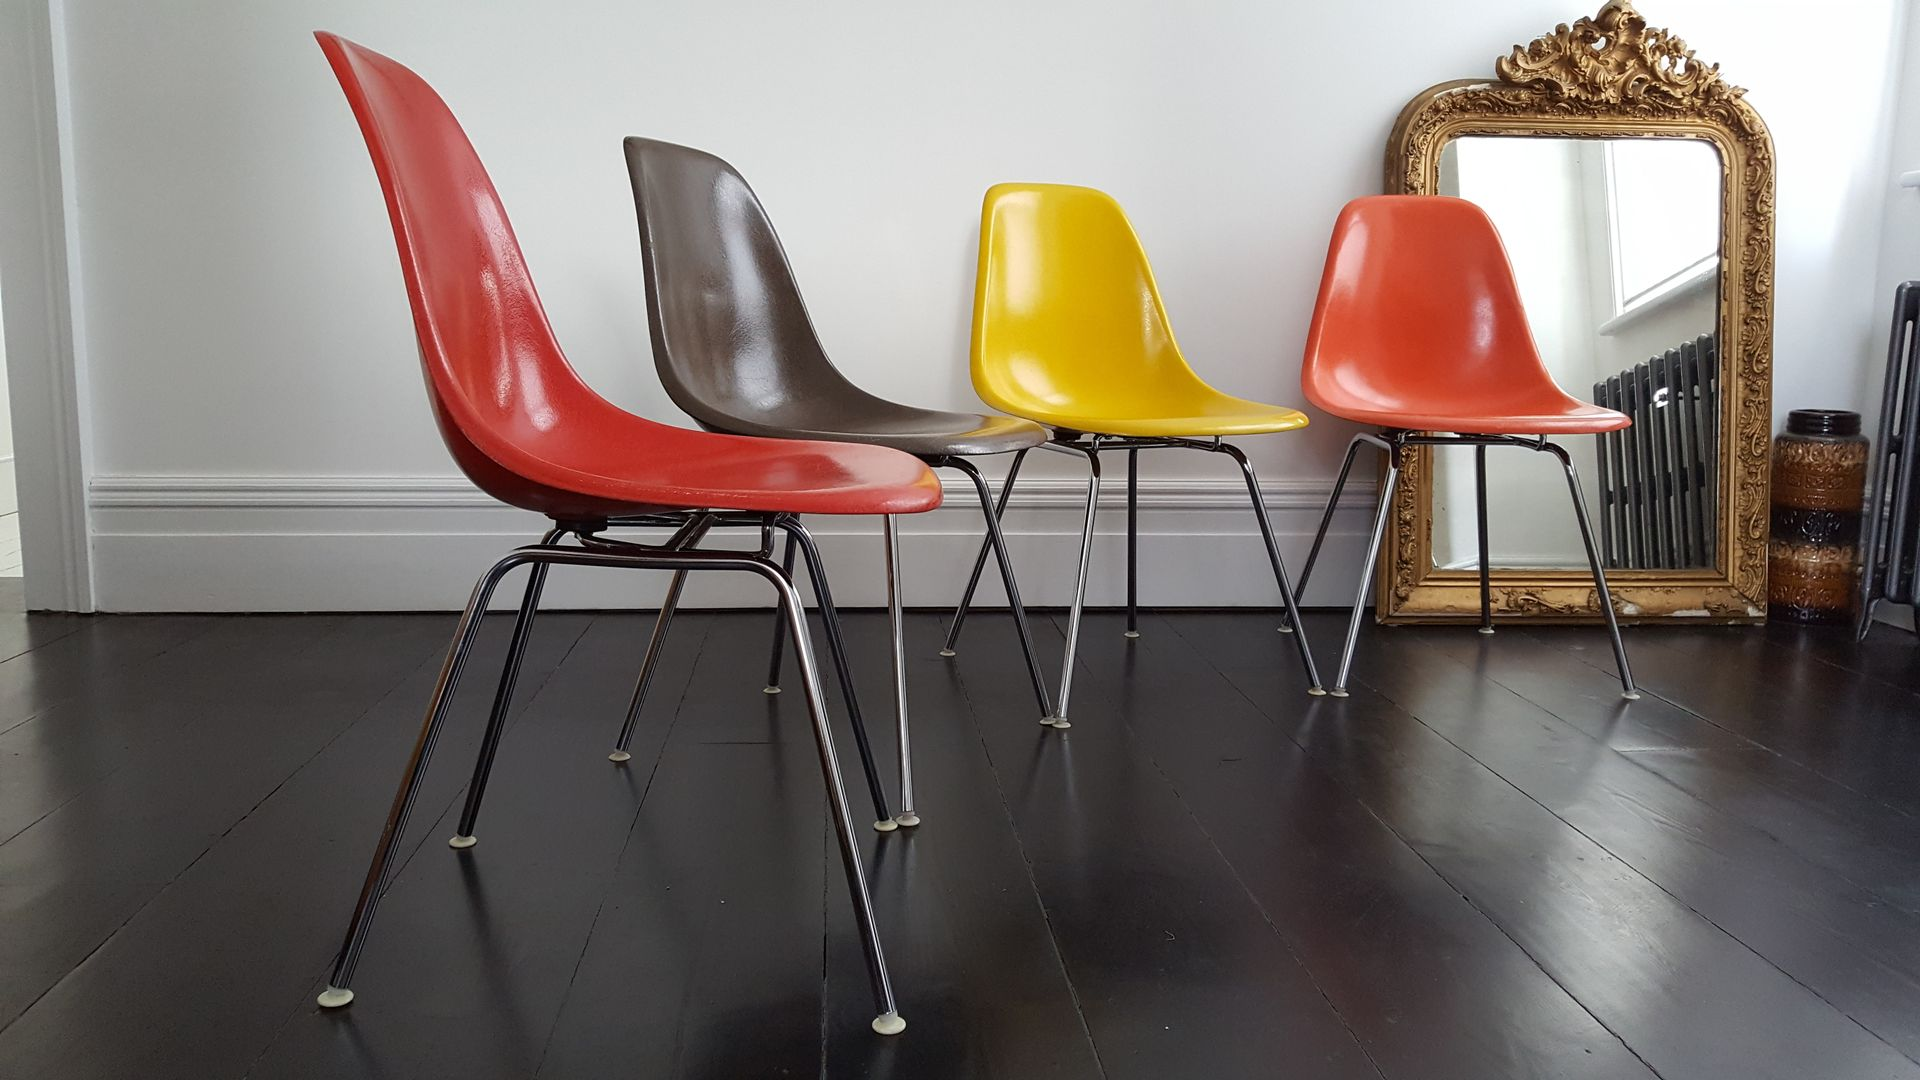 DSX Fiberglass Chairs by Charles & Ray Eames for Herman Miller